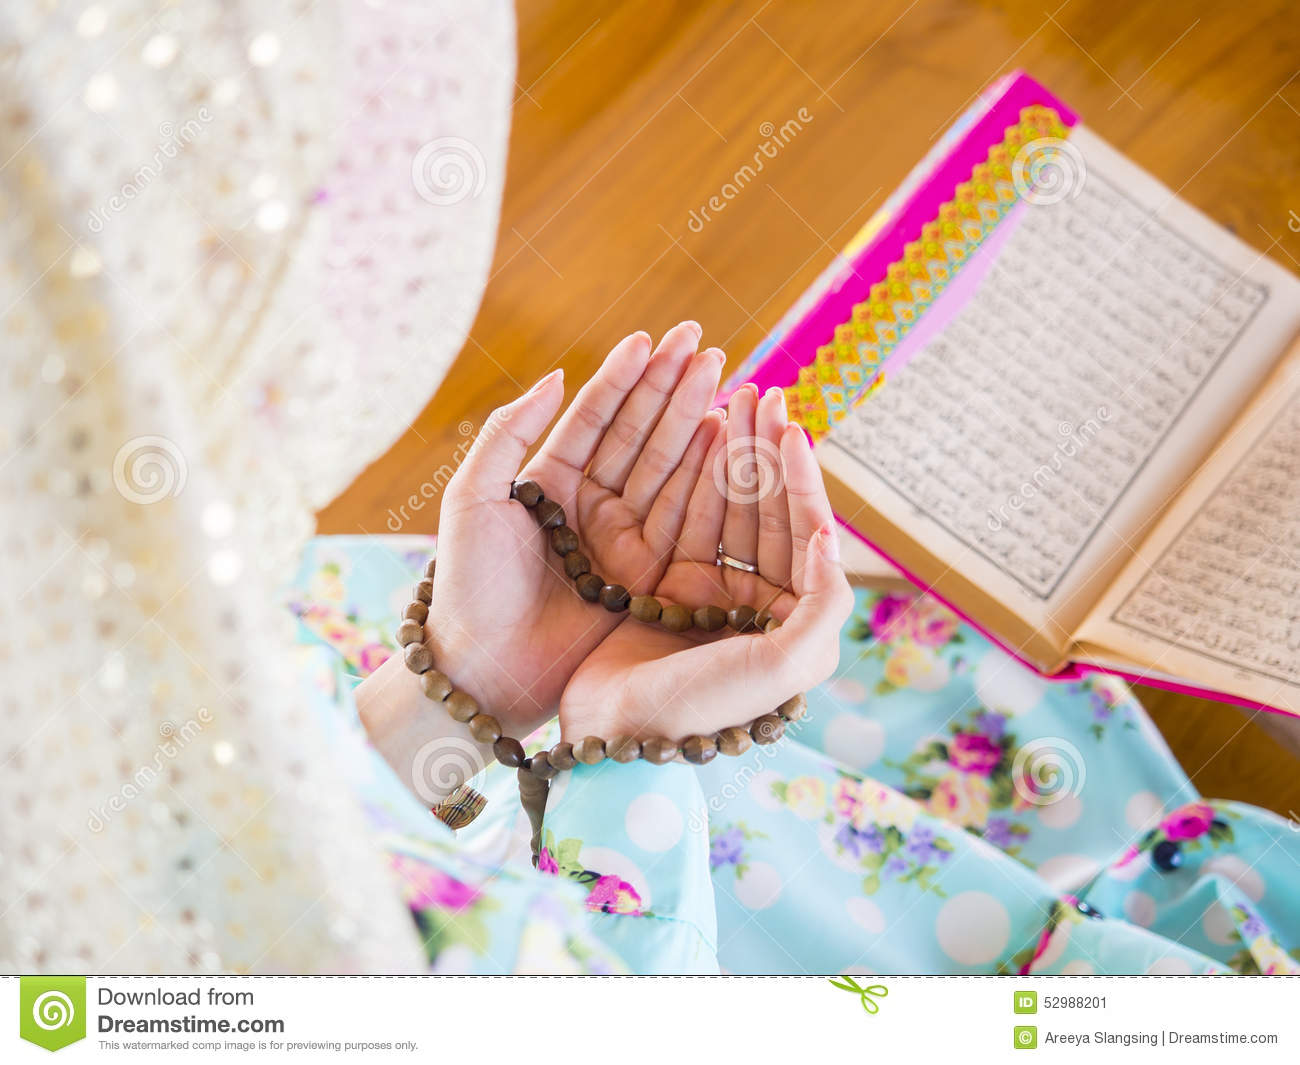 new hampshire muslim women dating site Find your single muslim girl or muslim man partner muslims4marriage in our islamic muslim marriage dating site in our muslim dating site will find a muslim man a muslim girl for.